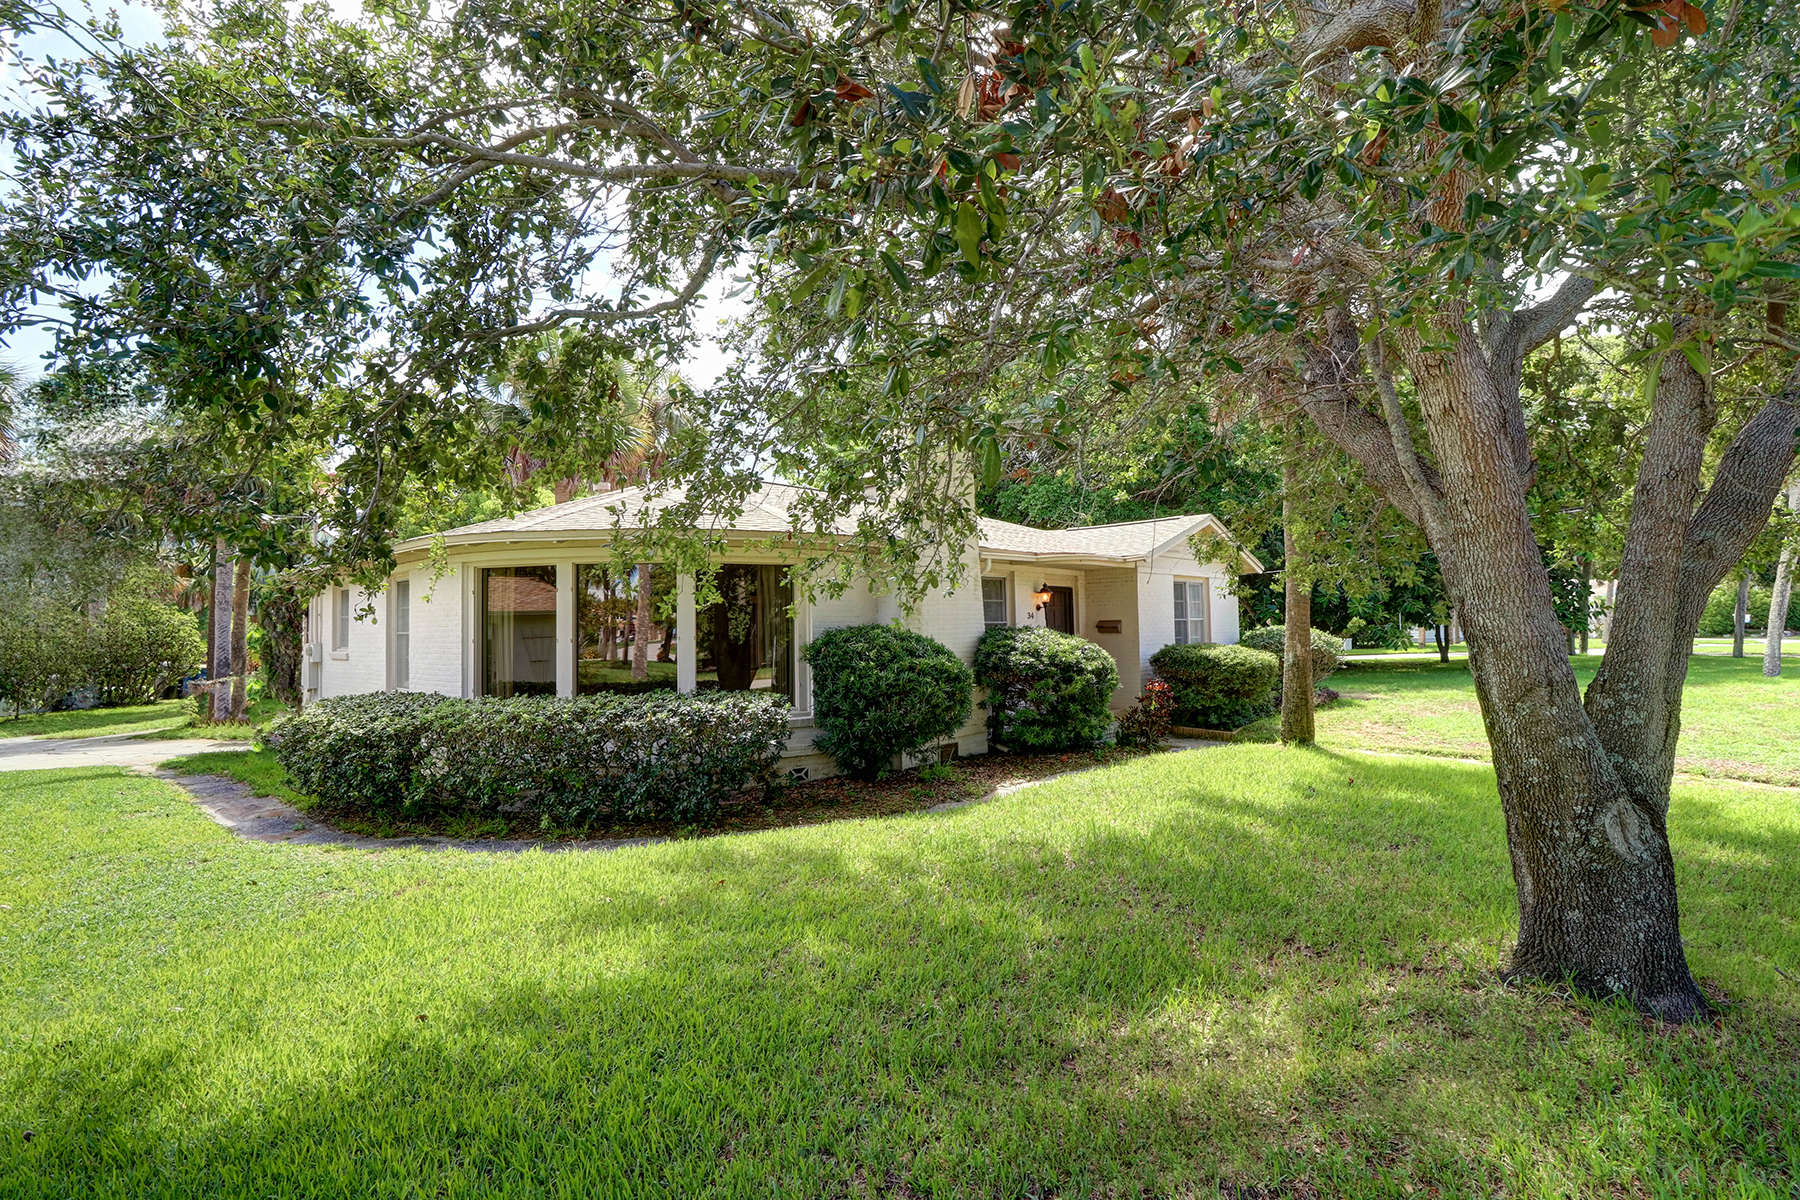 Single Family Home for Sale at CLEARWATER 34 Bohenia Cir N Clearwater Beach, Florida, 33767 United States